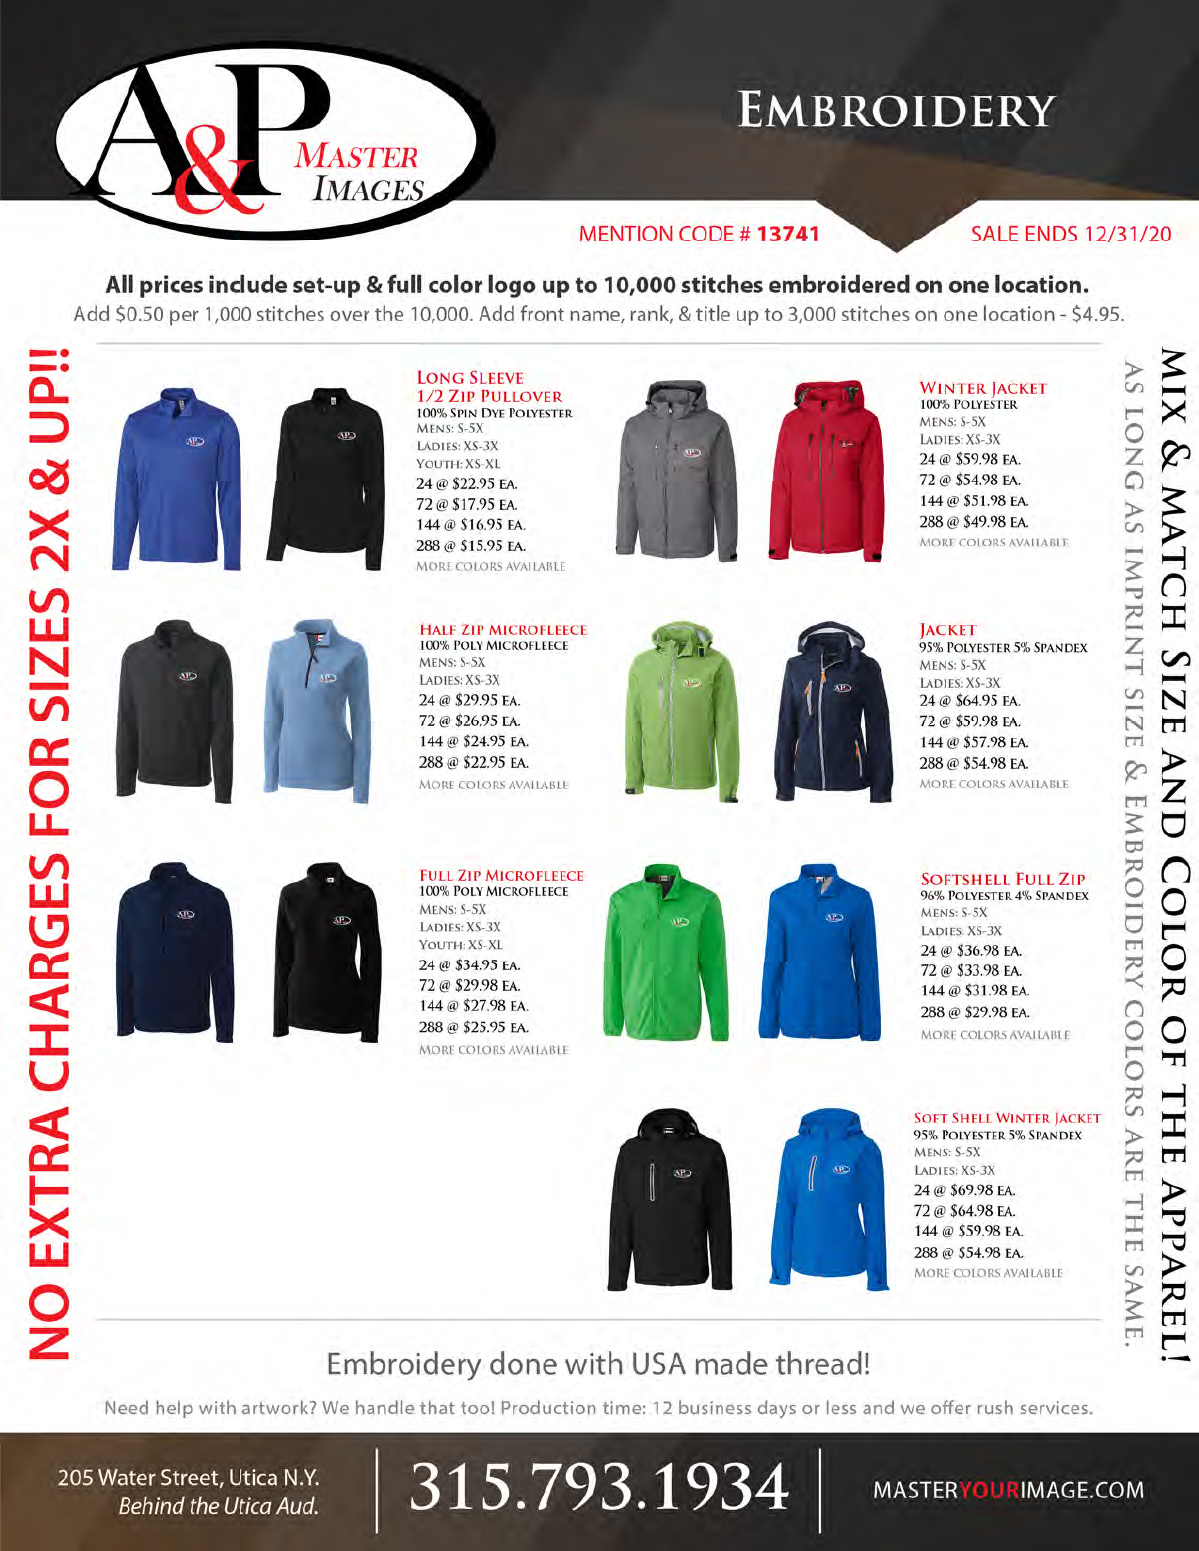 Sales Flyers - Embroidery 04